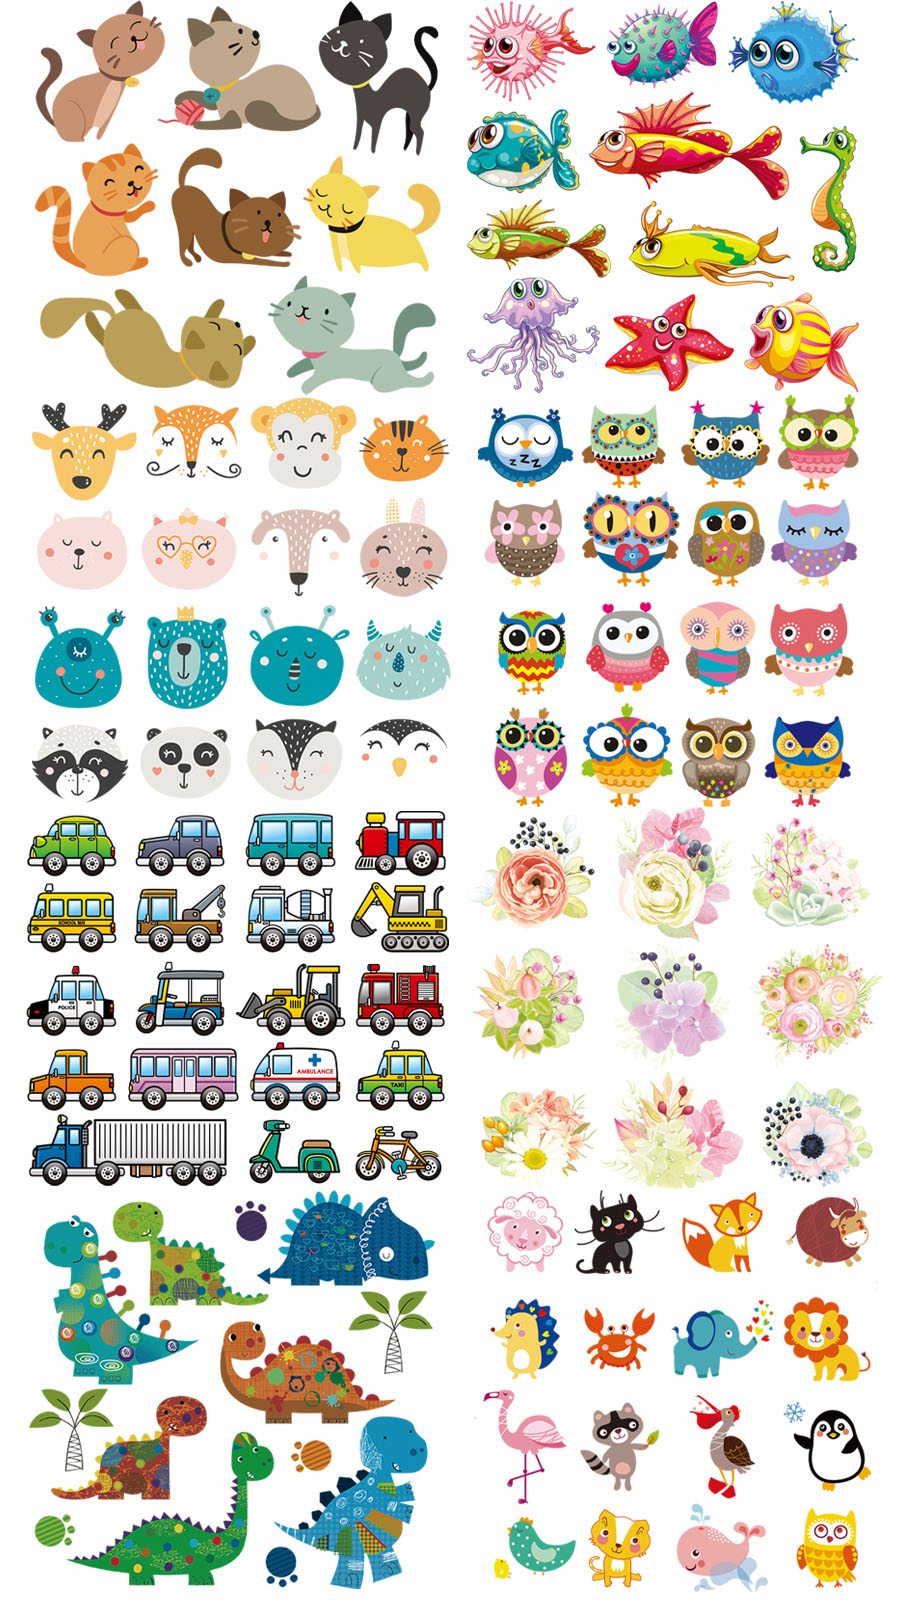 Set Of Patch Iron On Clothes Cute Animal Cars Clothing Deco New Design Diy Accessory Heat Transfer Washable Badges Patch 1